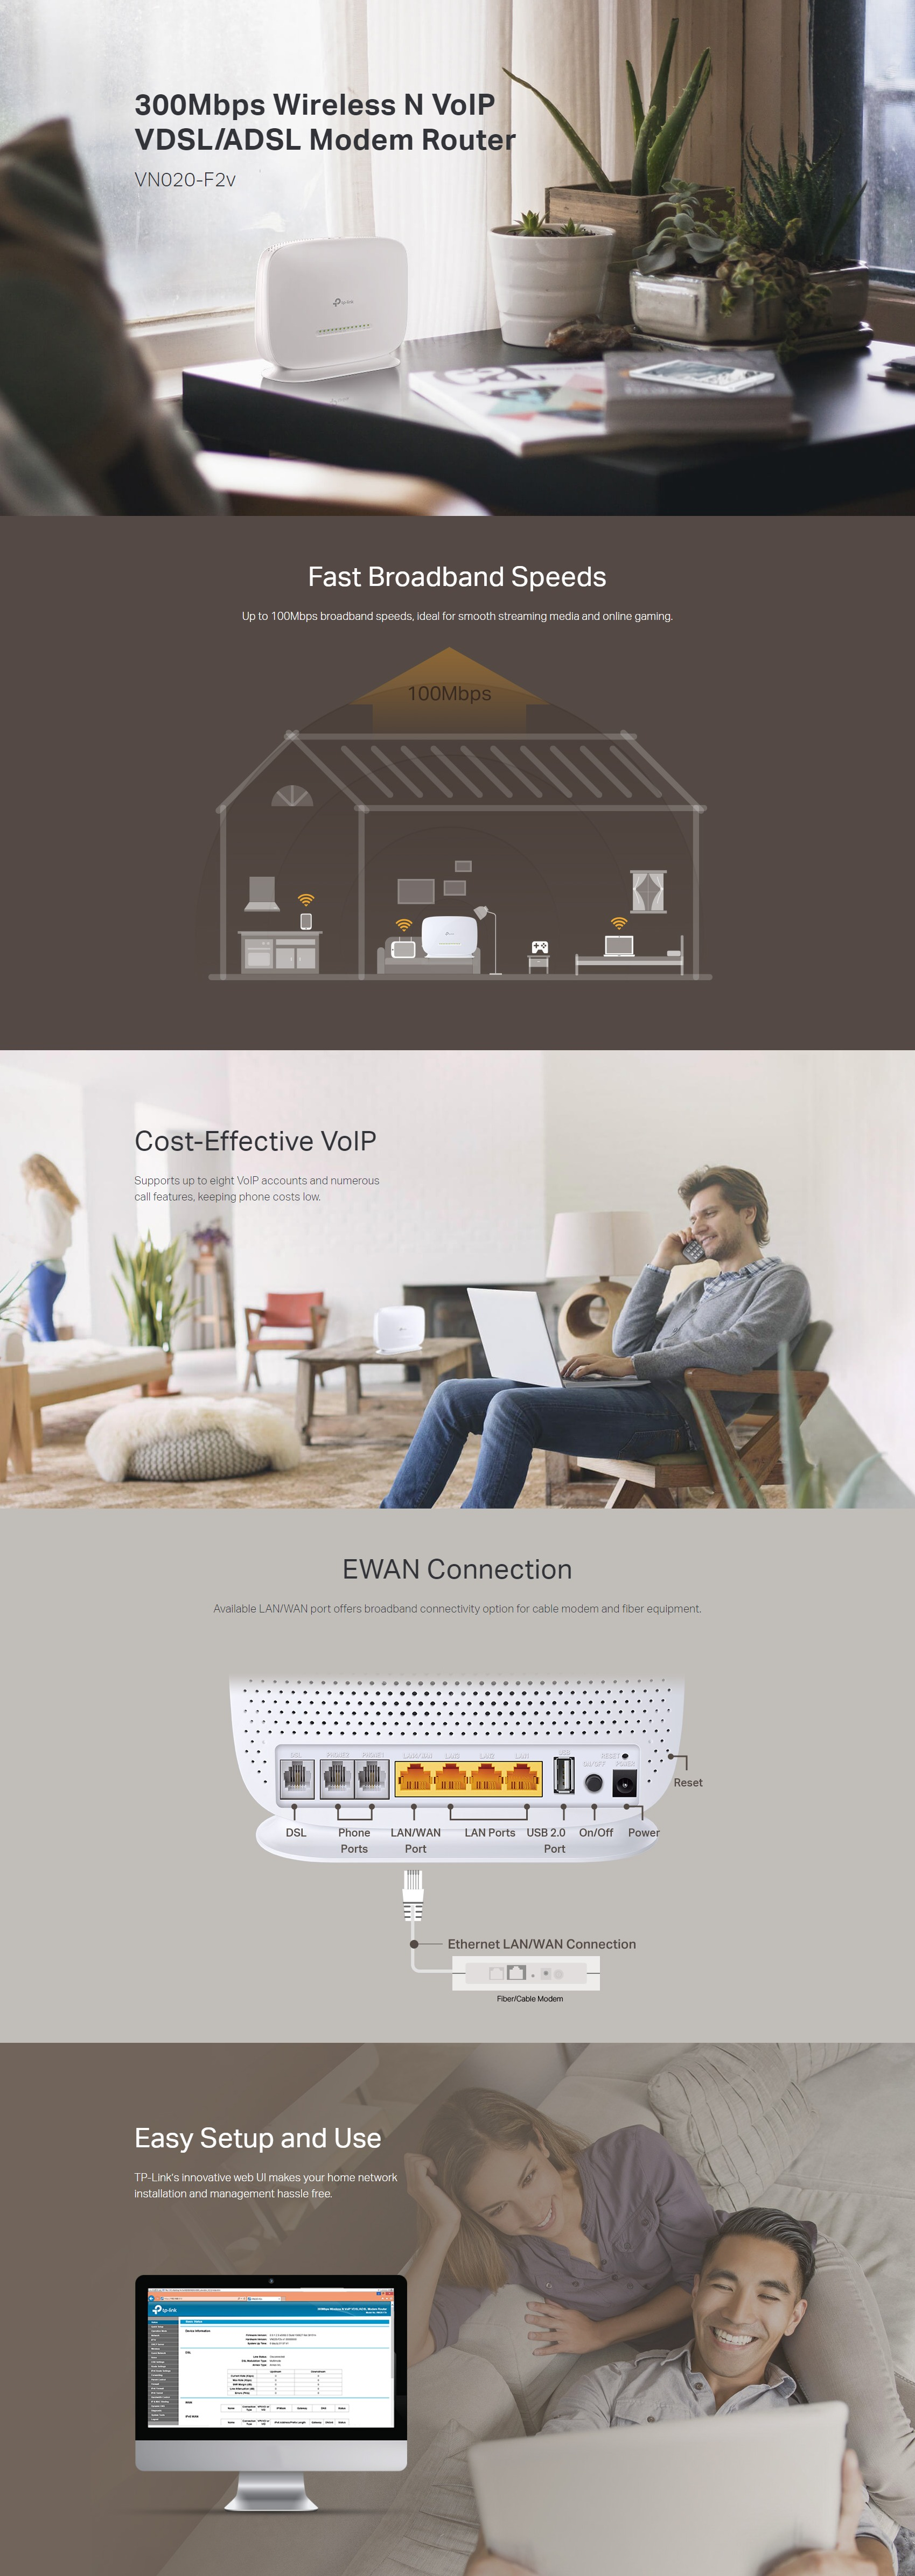 A large marketing image providing additional information about the product TP-Link VN020-F2v 300Mbps Wireless N VoIP VDSL/ADSL Modem Router - Additional alt info not provided